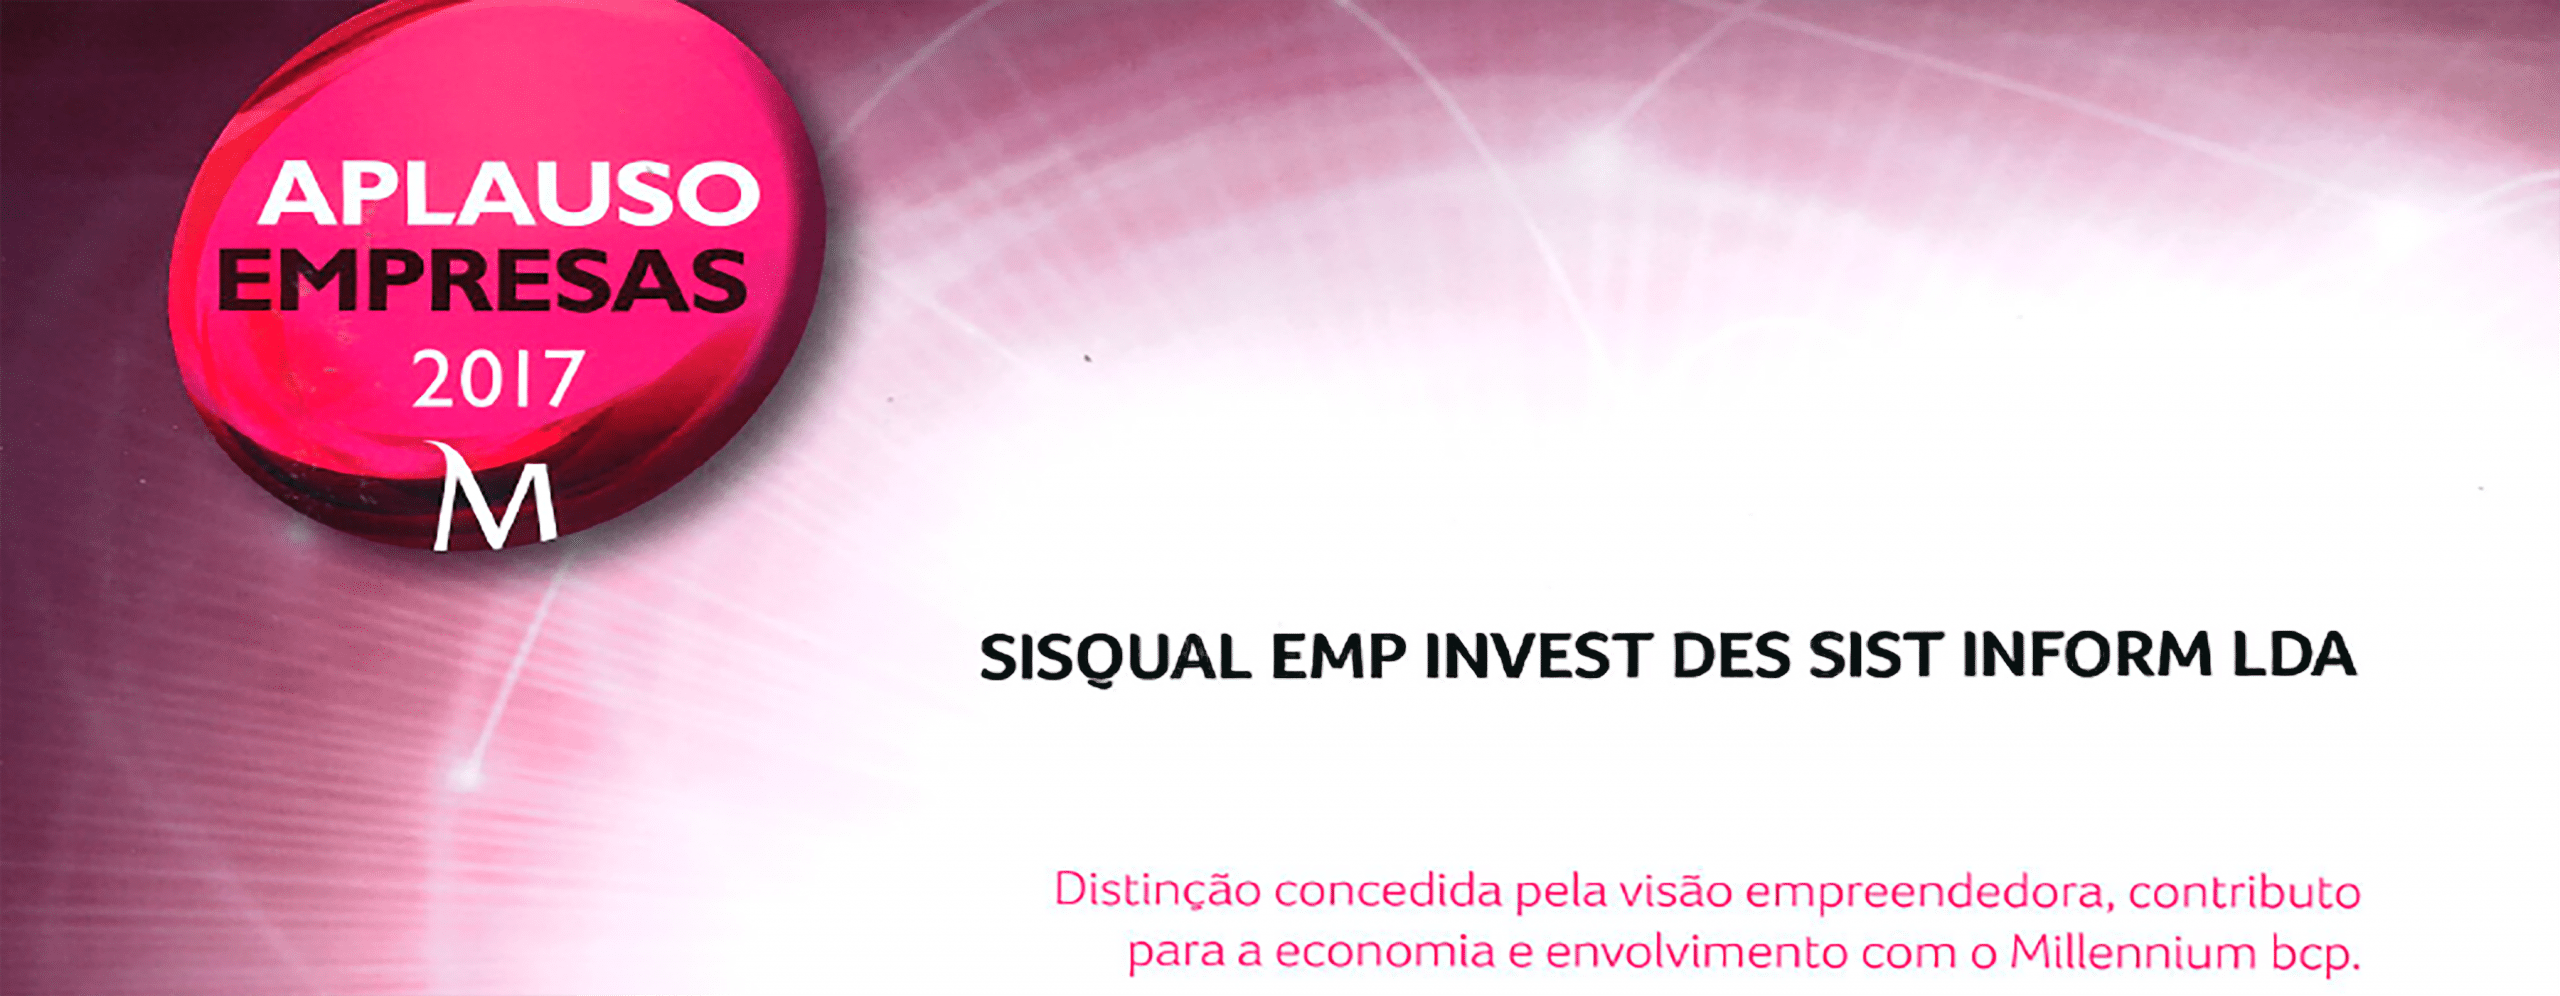 SISQUAL distinguished with the status of Aplause Company